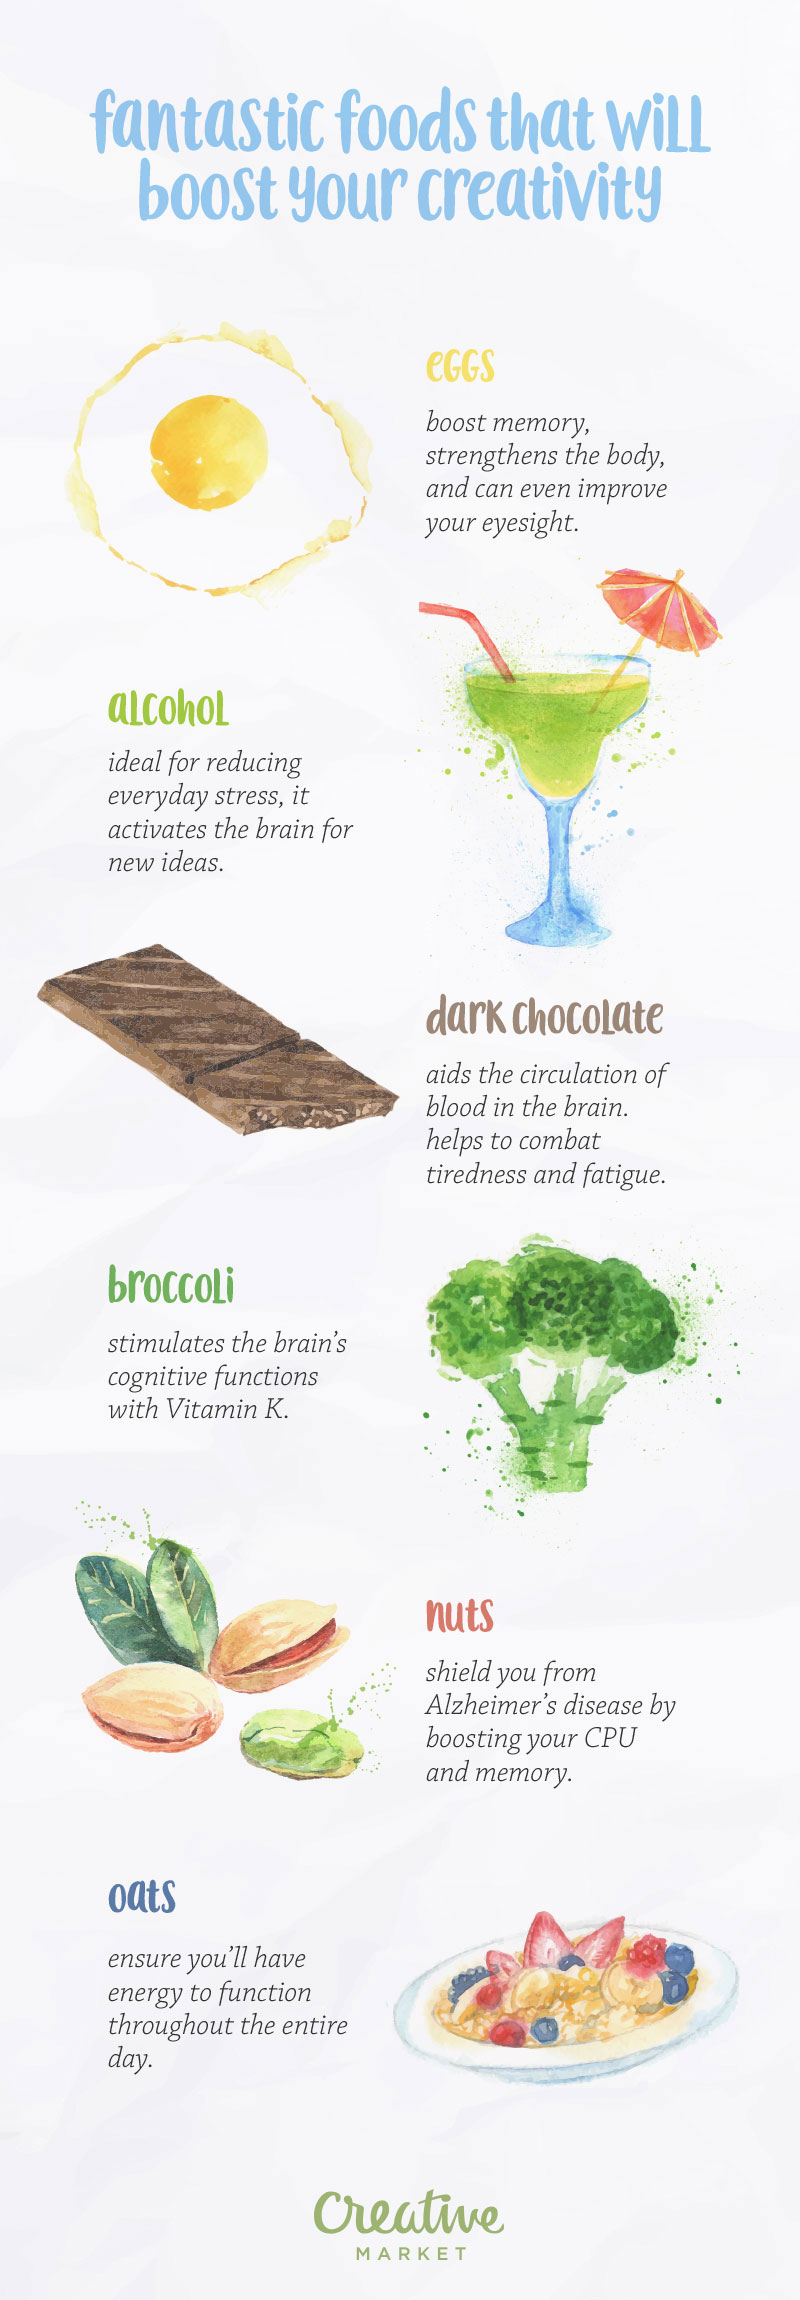 Creative-Foods-Inf